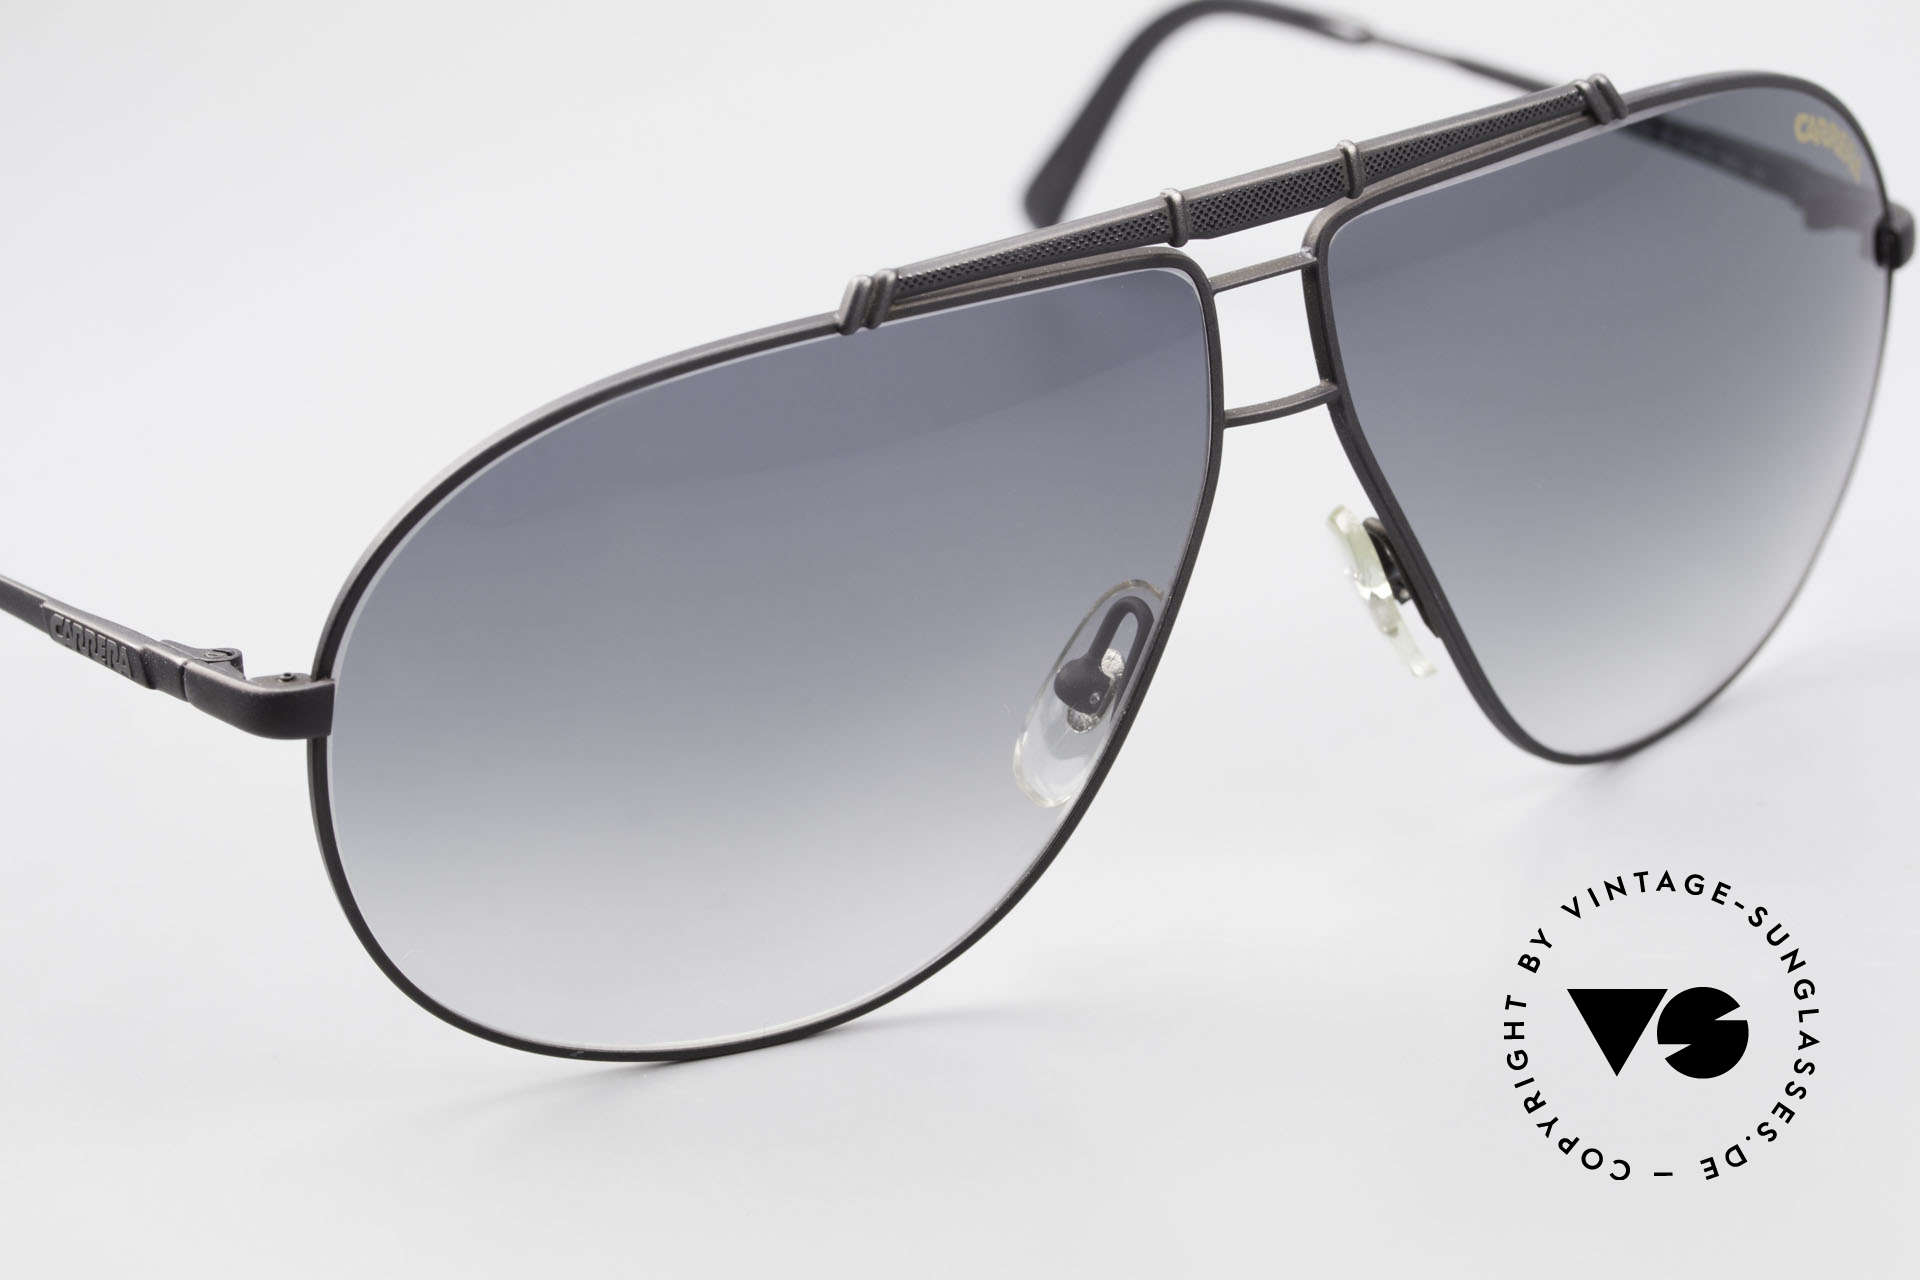 Carrera 5401 Large 80's Shades With Extra Lenses, unworn, NOS (like all our VINTAGE Carrera sunglasses), Made for Men